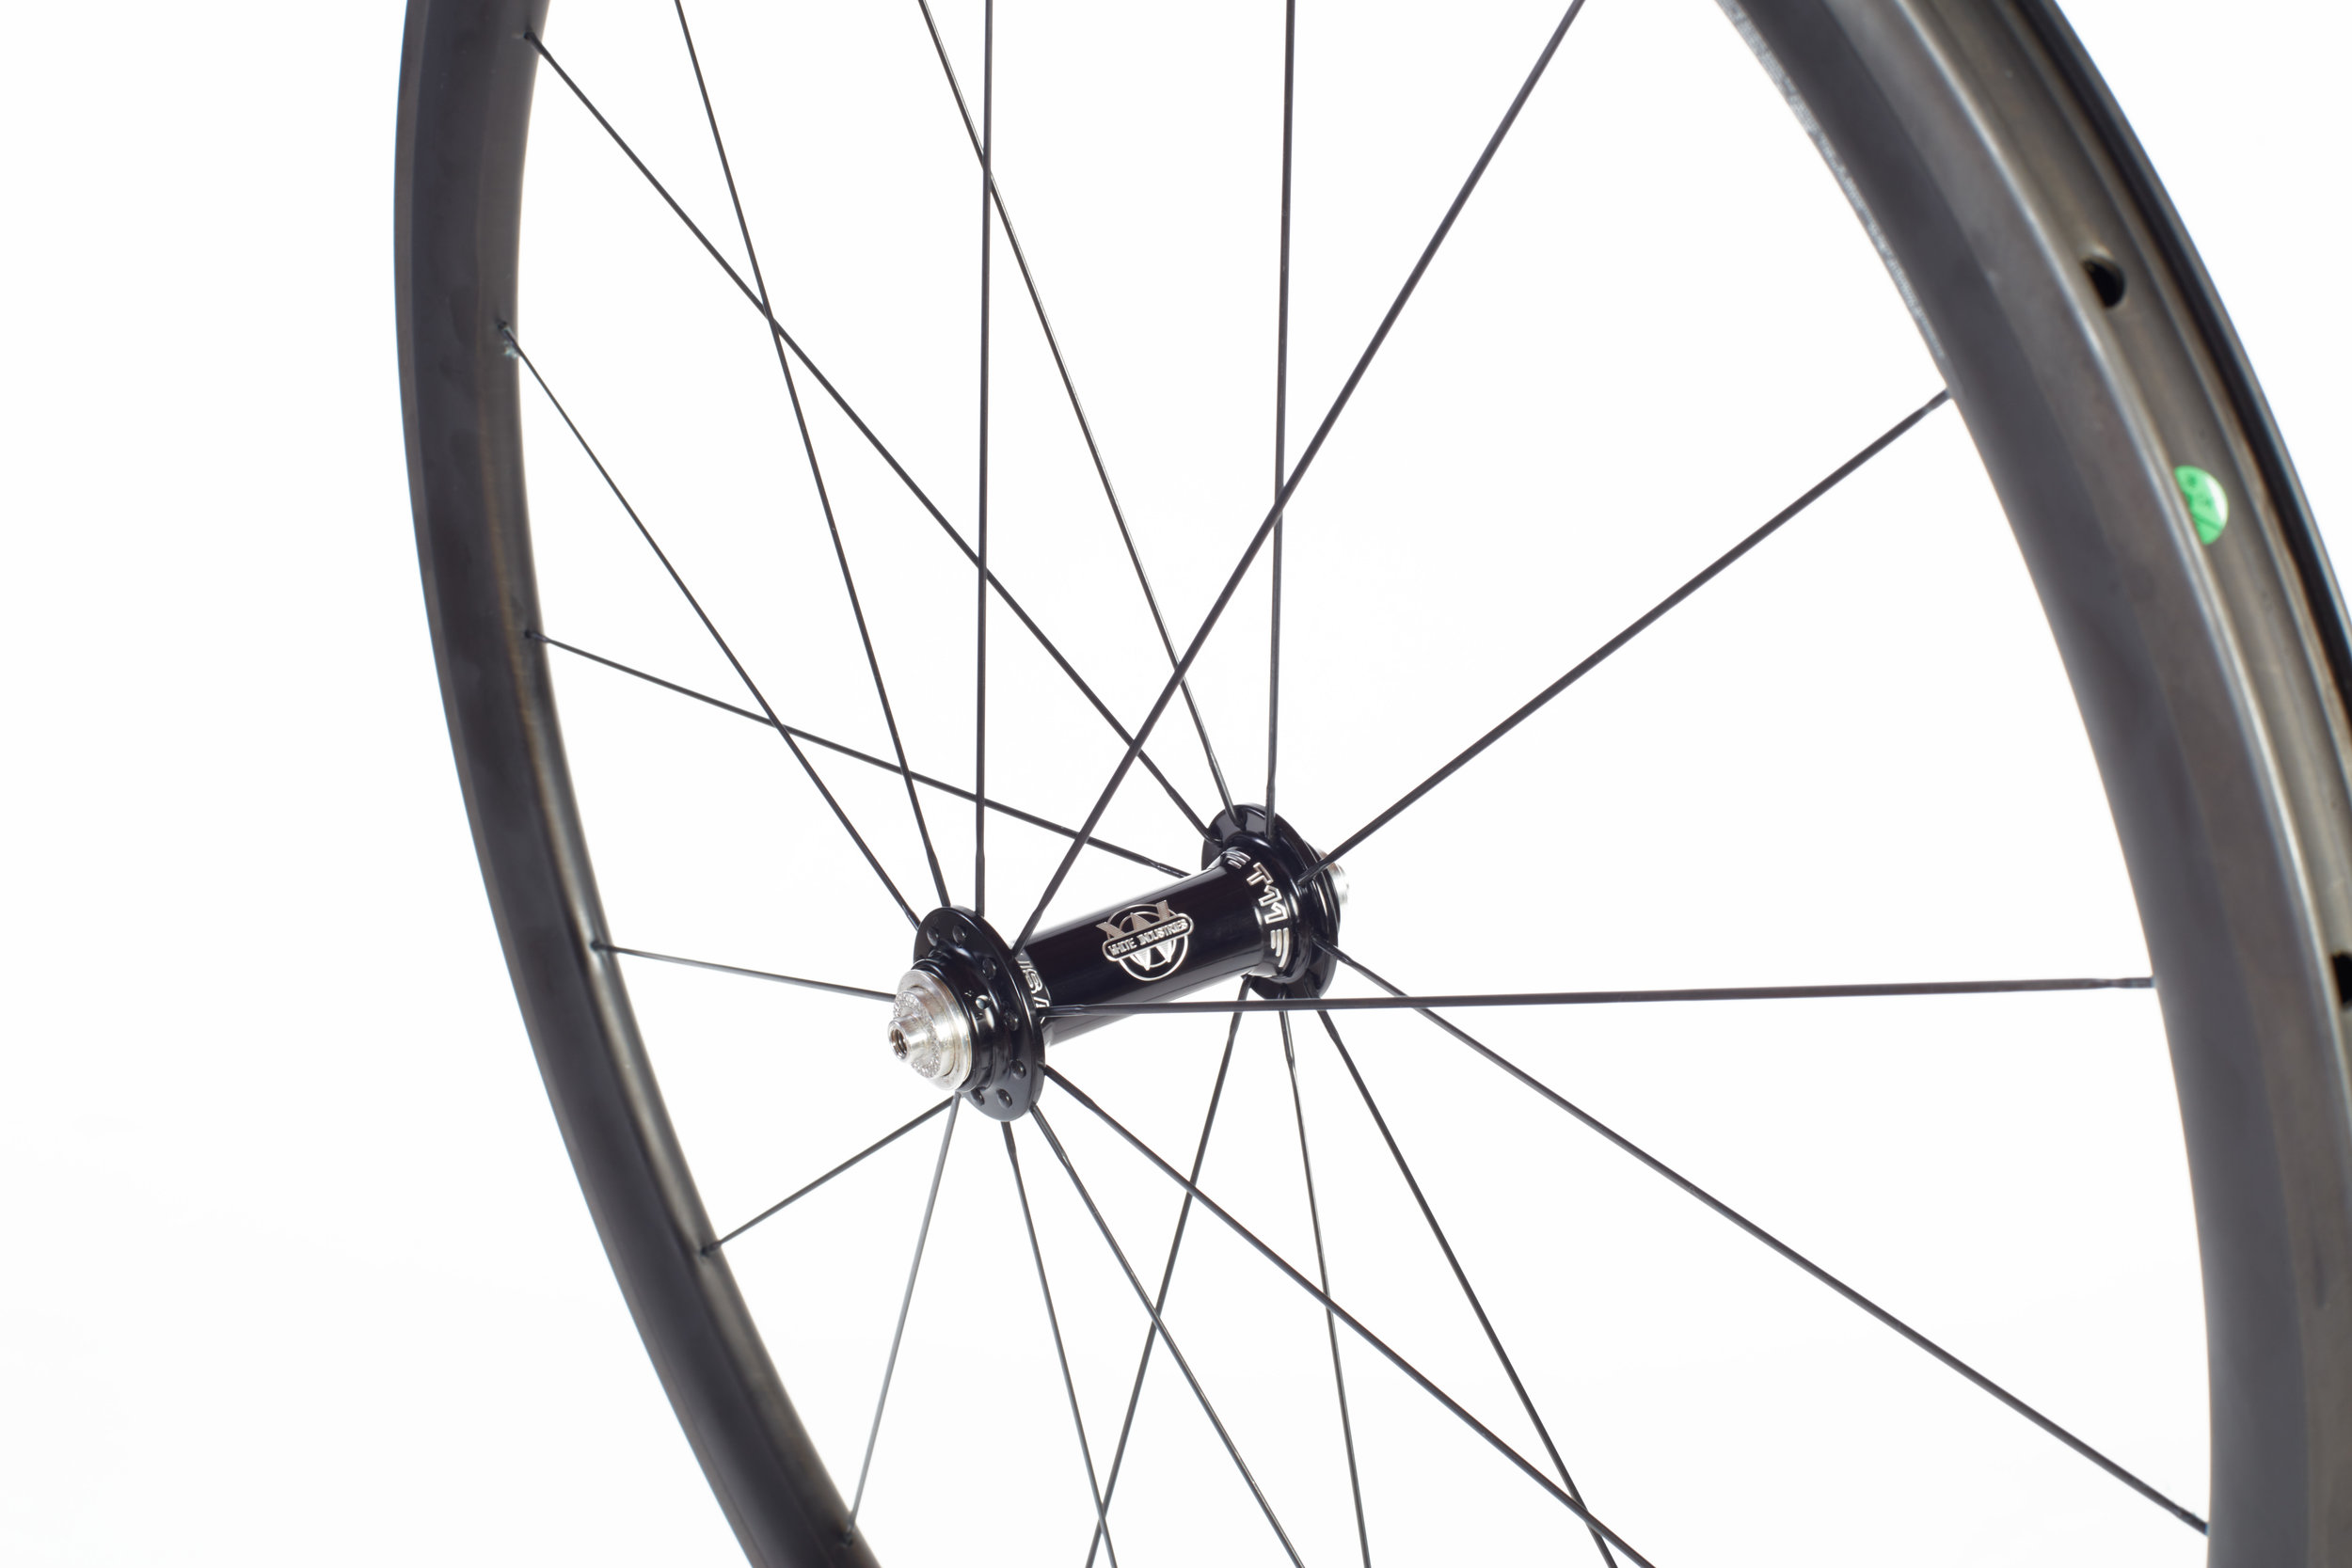 Featherlight's Elysian 38's are an incredibly versatile wheelset designed to use day in day out.